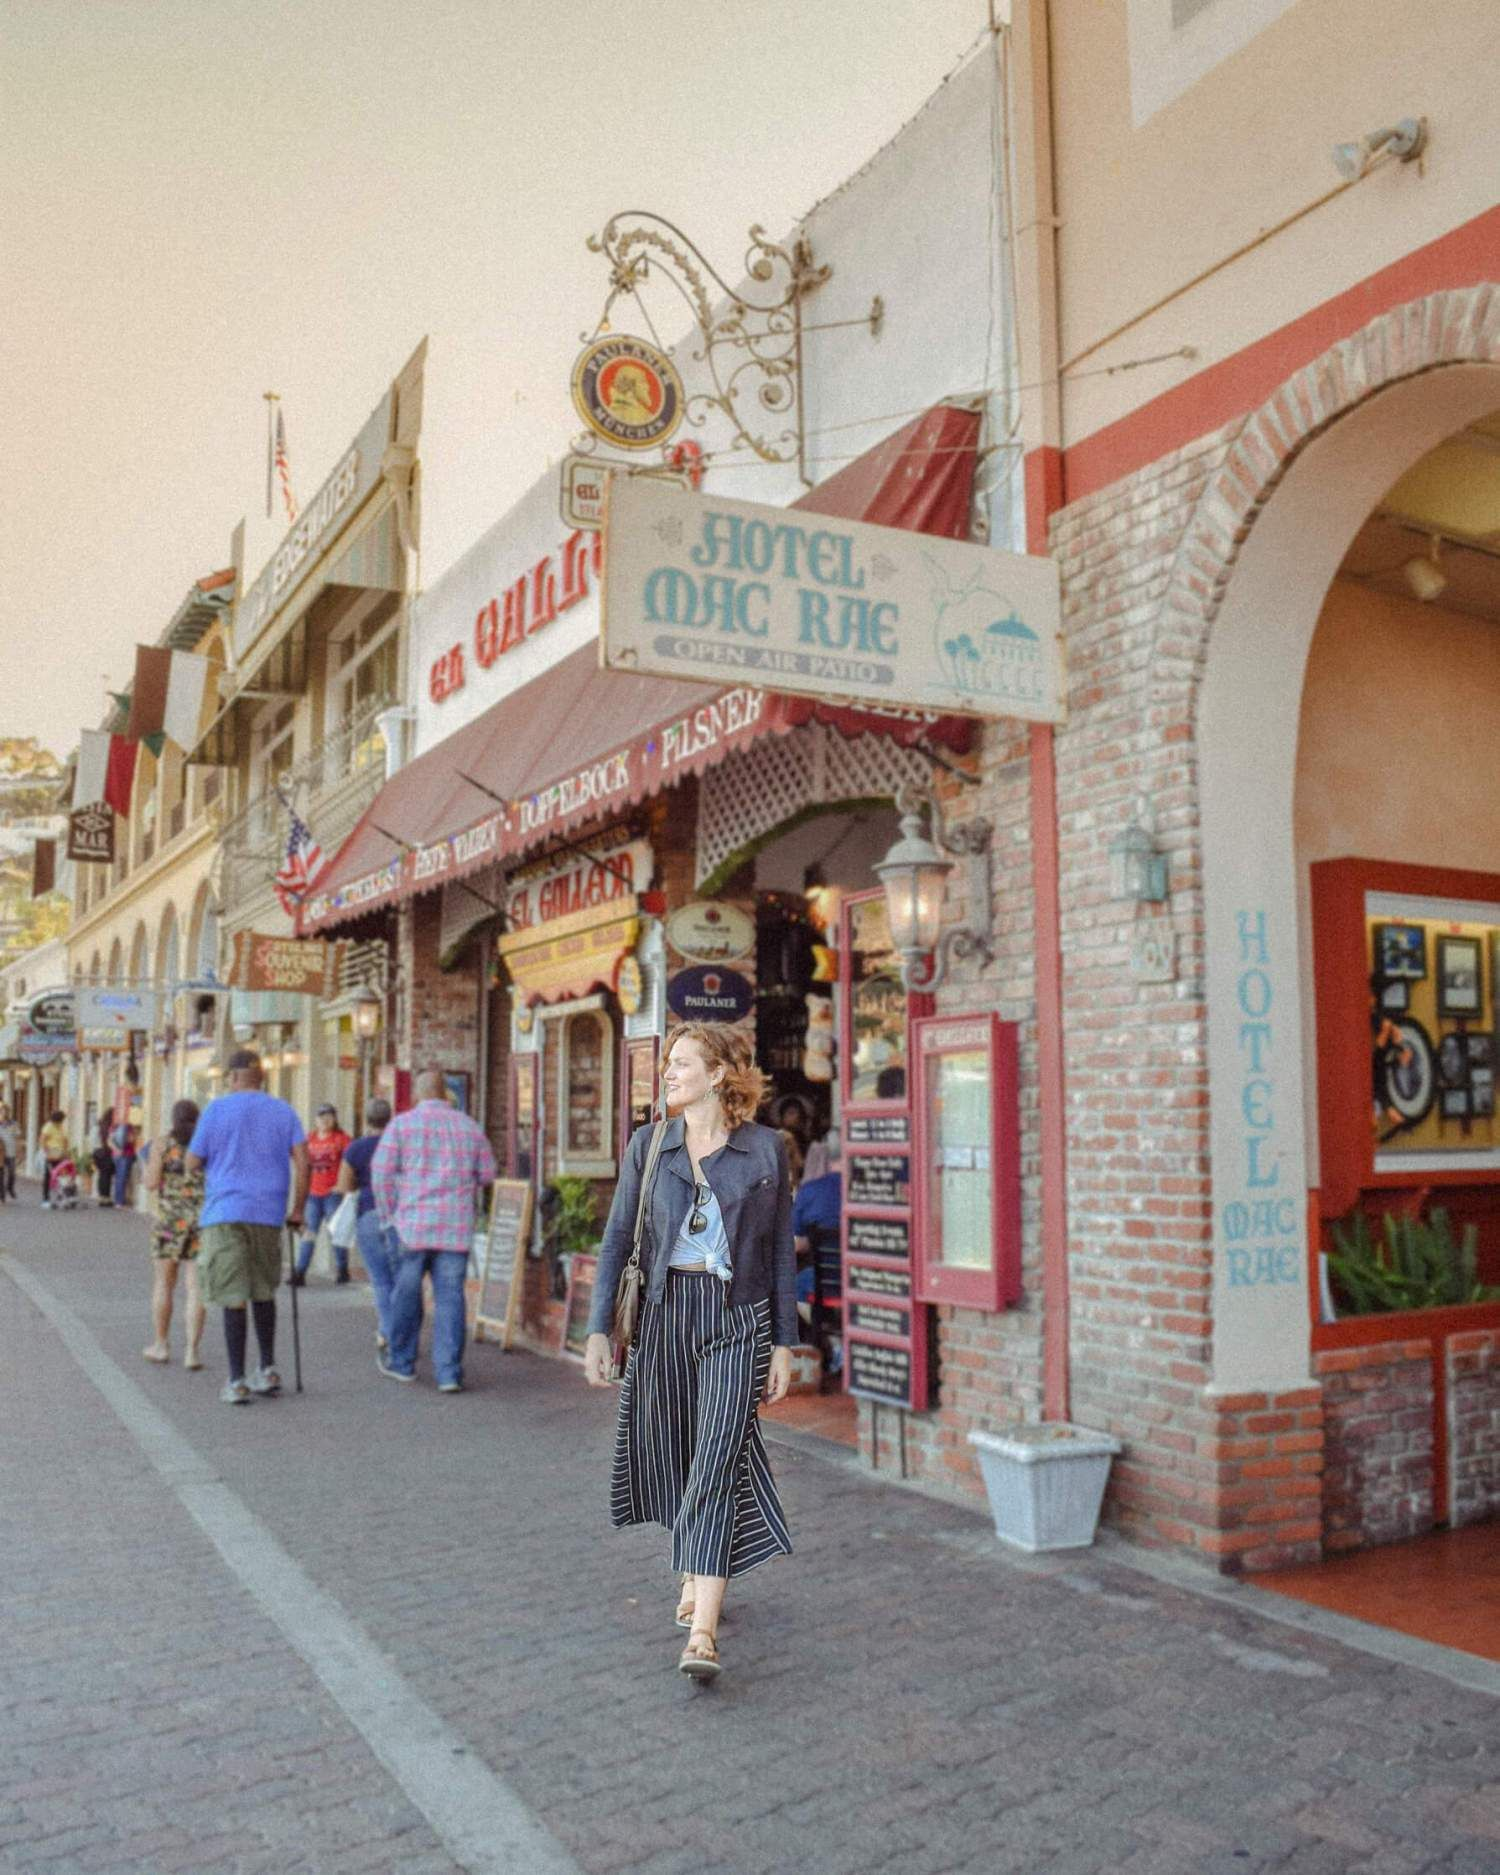 Catalina island getaway guide best things to do see and